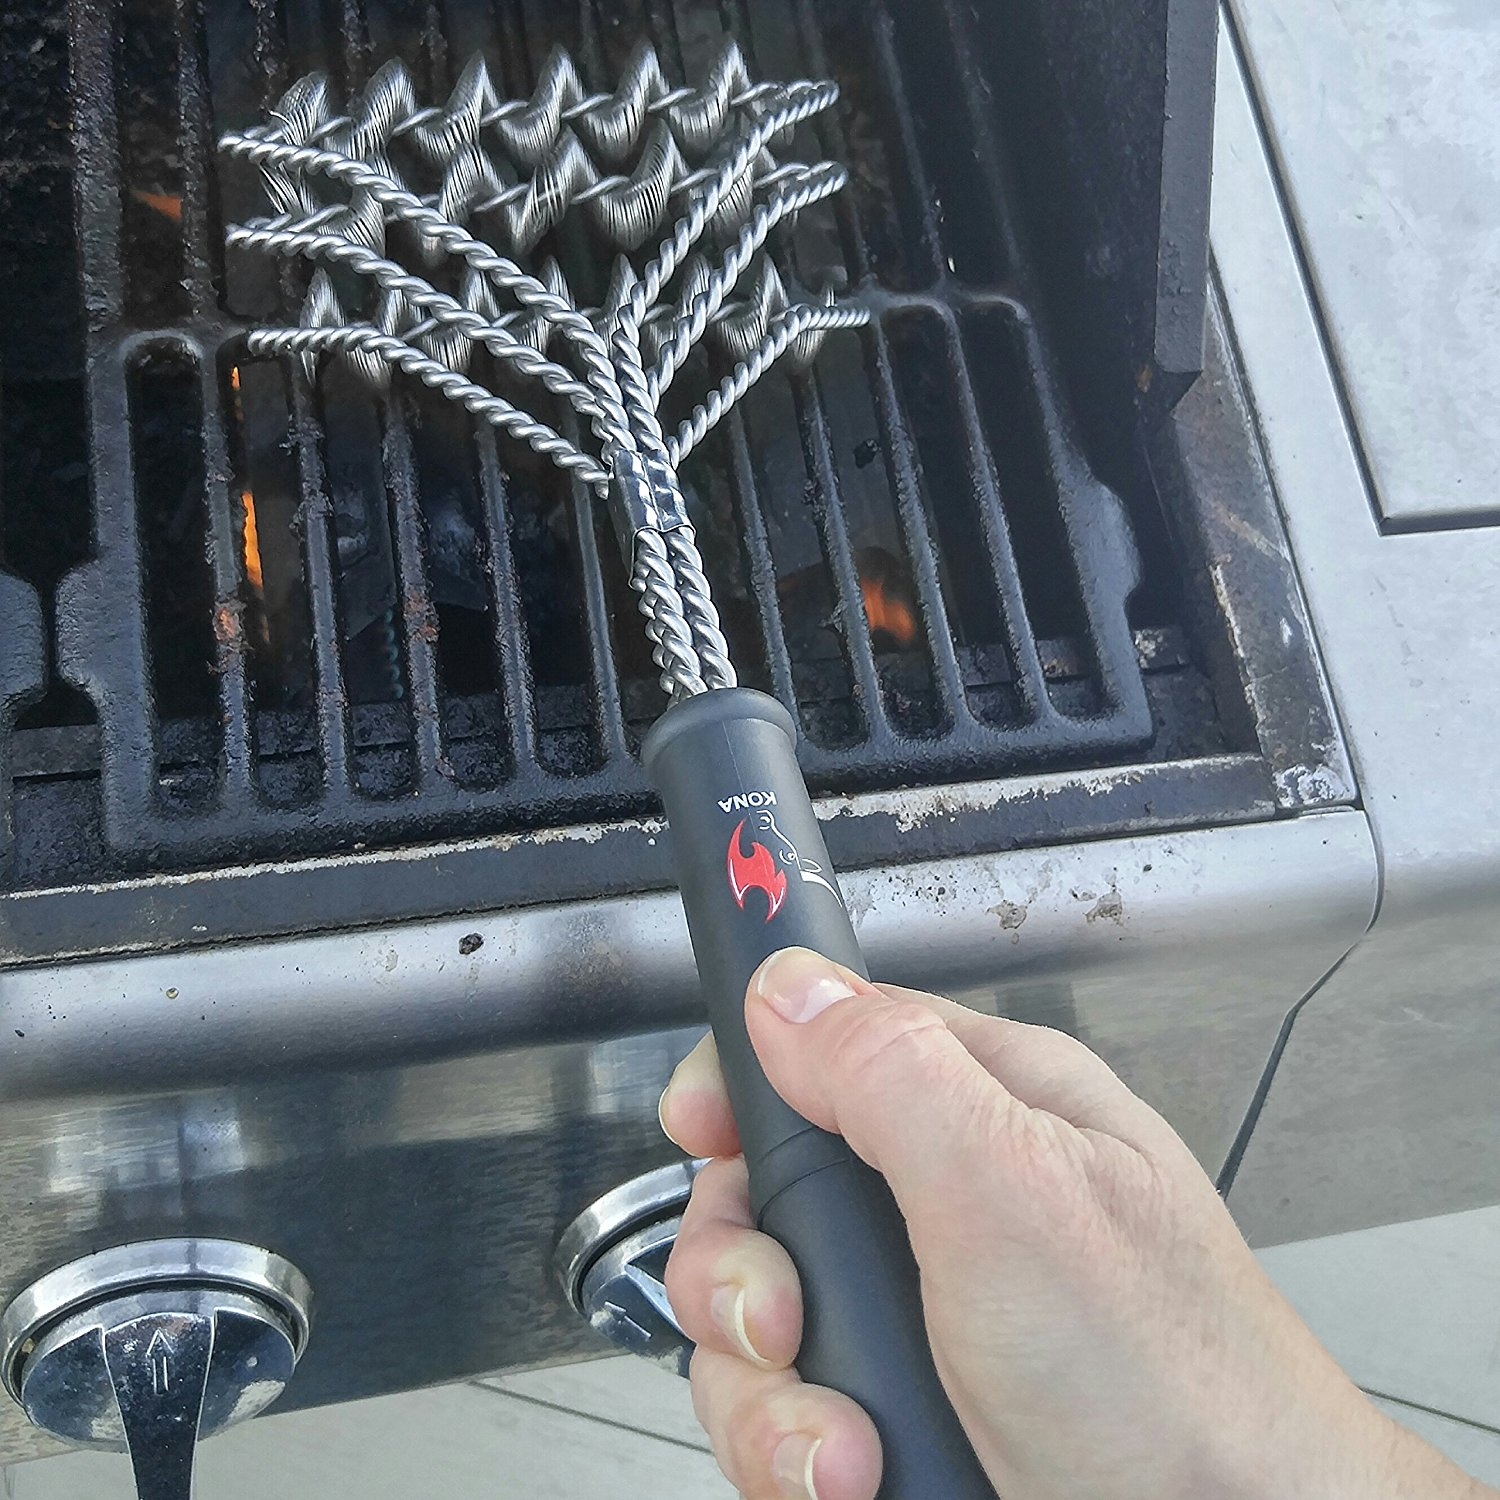 Cleaning A Grill Without A Wire Brush Grill Wire Brush Alternatives Outdoor Fire Pits Fireplaces Grills